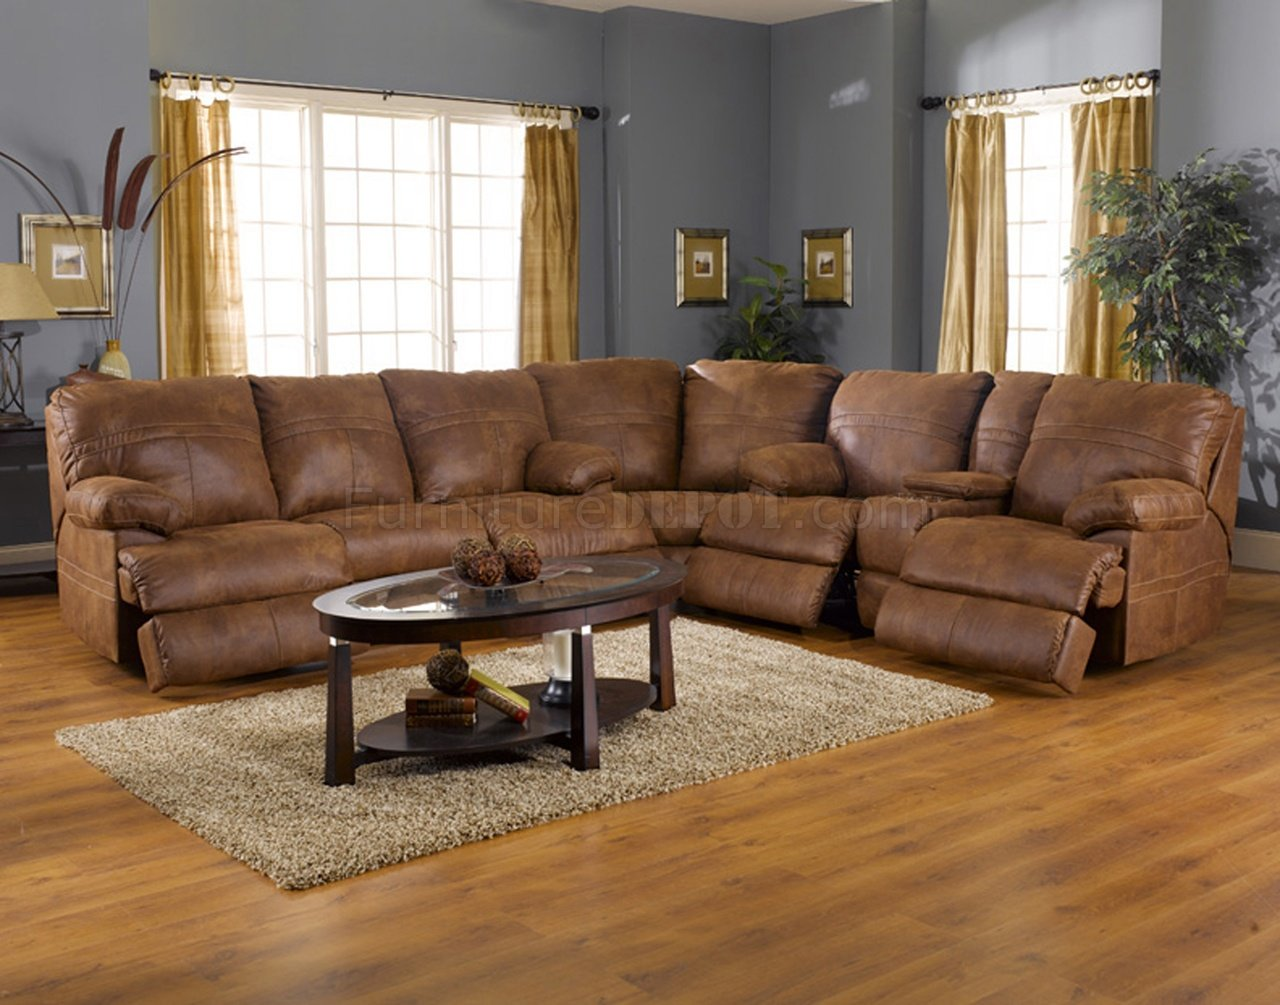 Leather Sectional Sofa Recliner Rich Tanner Faux Leather Fabric Ranger Modern Sectional Sofa